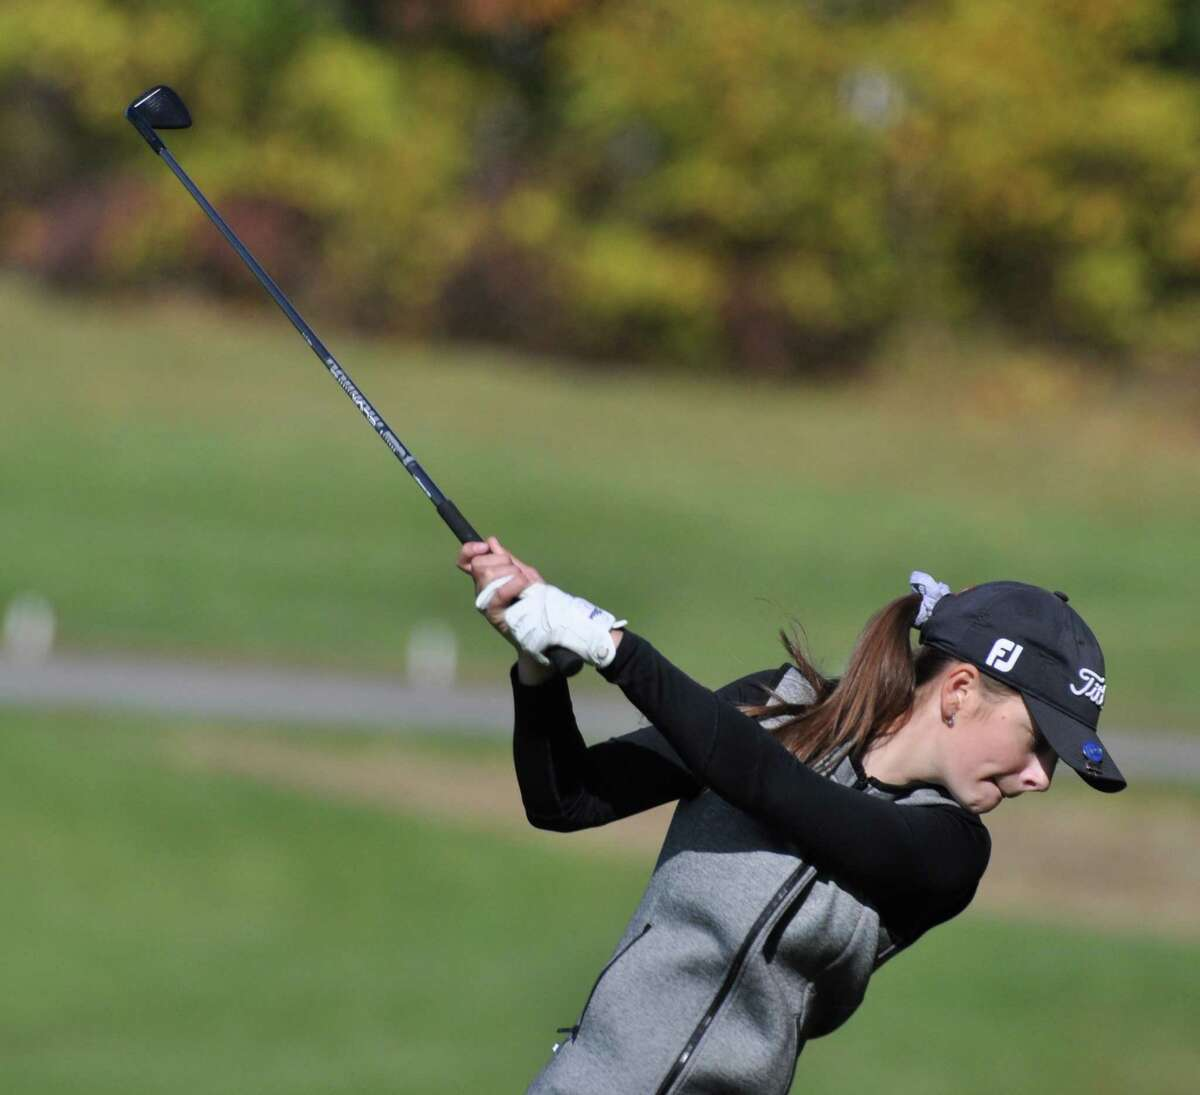 Kennedy Swedick, an 8th-grader at Albany Academy for Girls, takes a shot during the Section 2 Girls Golf Sectional and State Qualifier on Oct. 11, 2019, at Fairways of Halfmoon. She shot a 76 to win in the first-ever Section 2 golf sectionals for girls. (Joyce Bassett / Times Union)